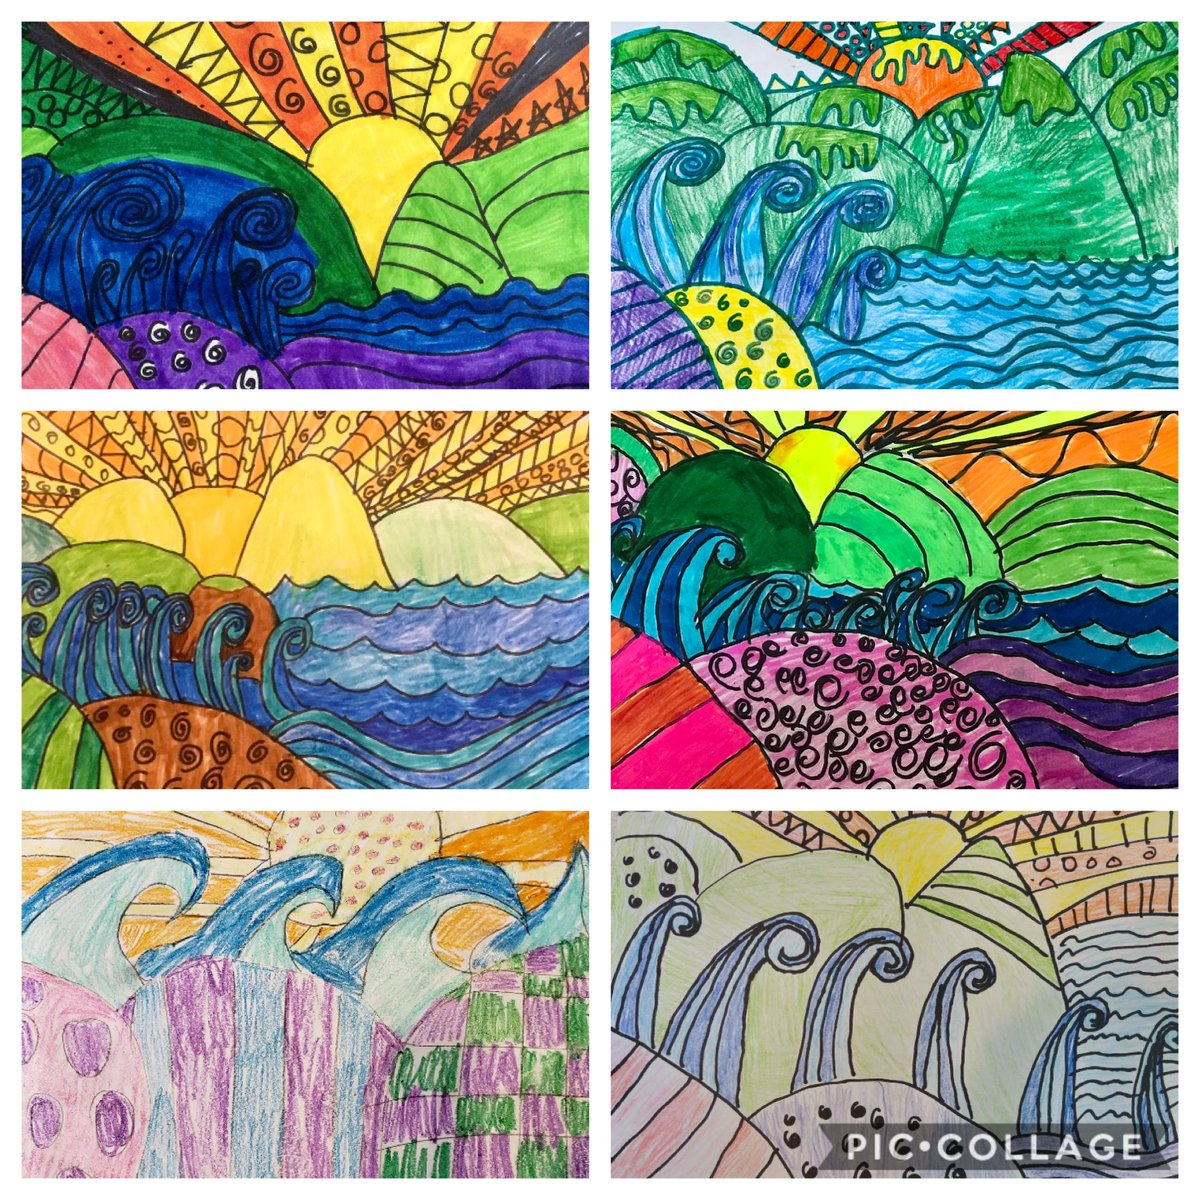 Our 4th graders created beautiful landscapes! ⁦@NYCSchools⁩ ⁦@DOEChancellor⁩ ⁦@District27NYC⁩